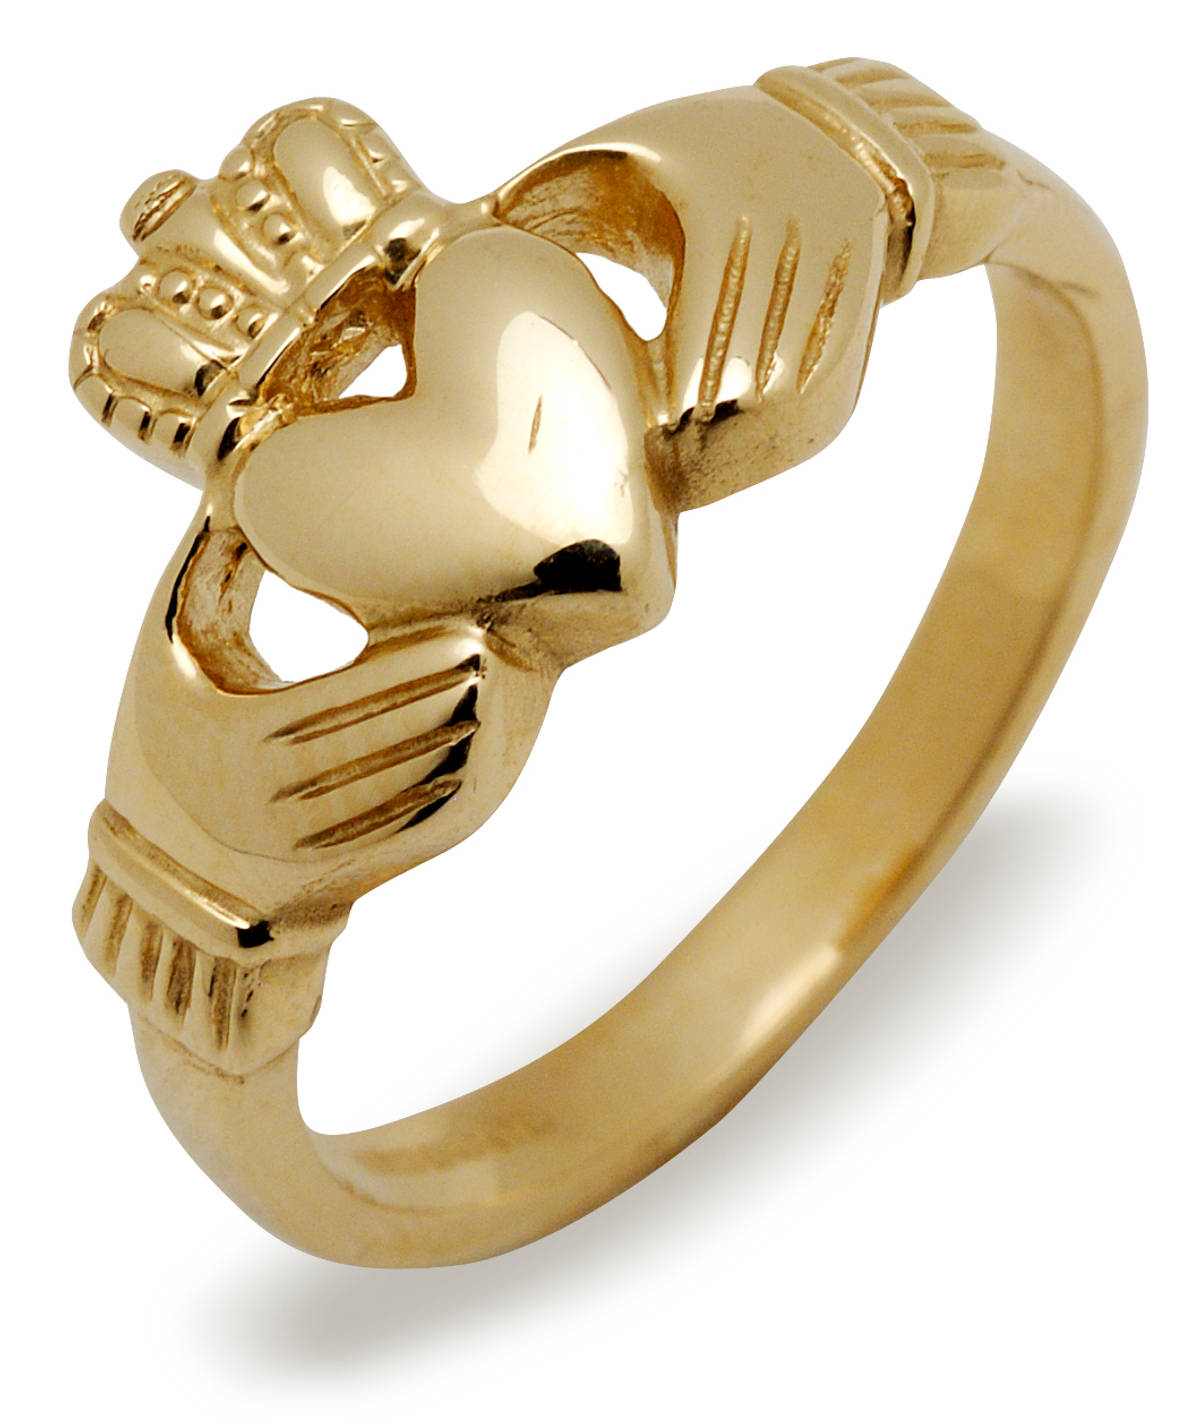 10 carat yellow gold (or white gold) Claddagh ring